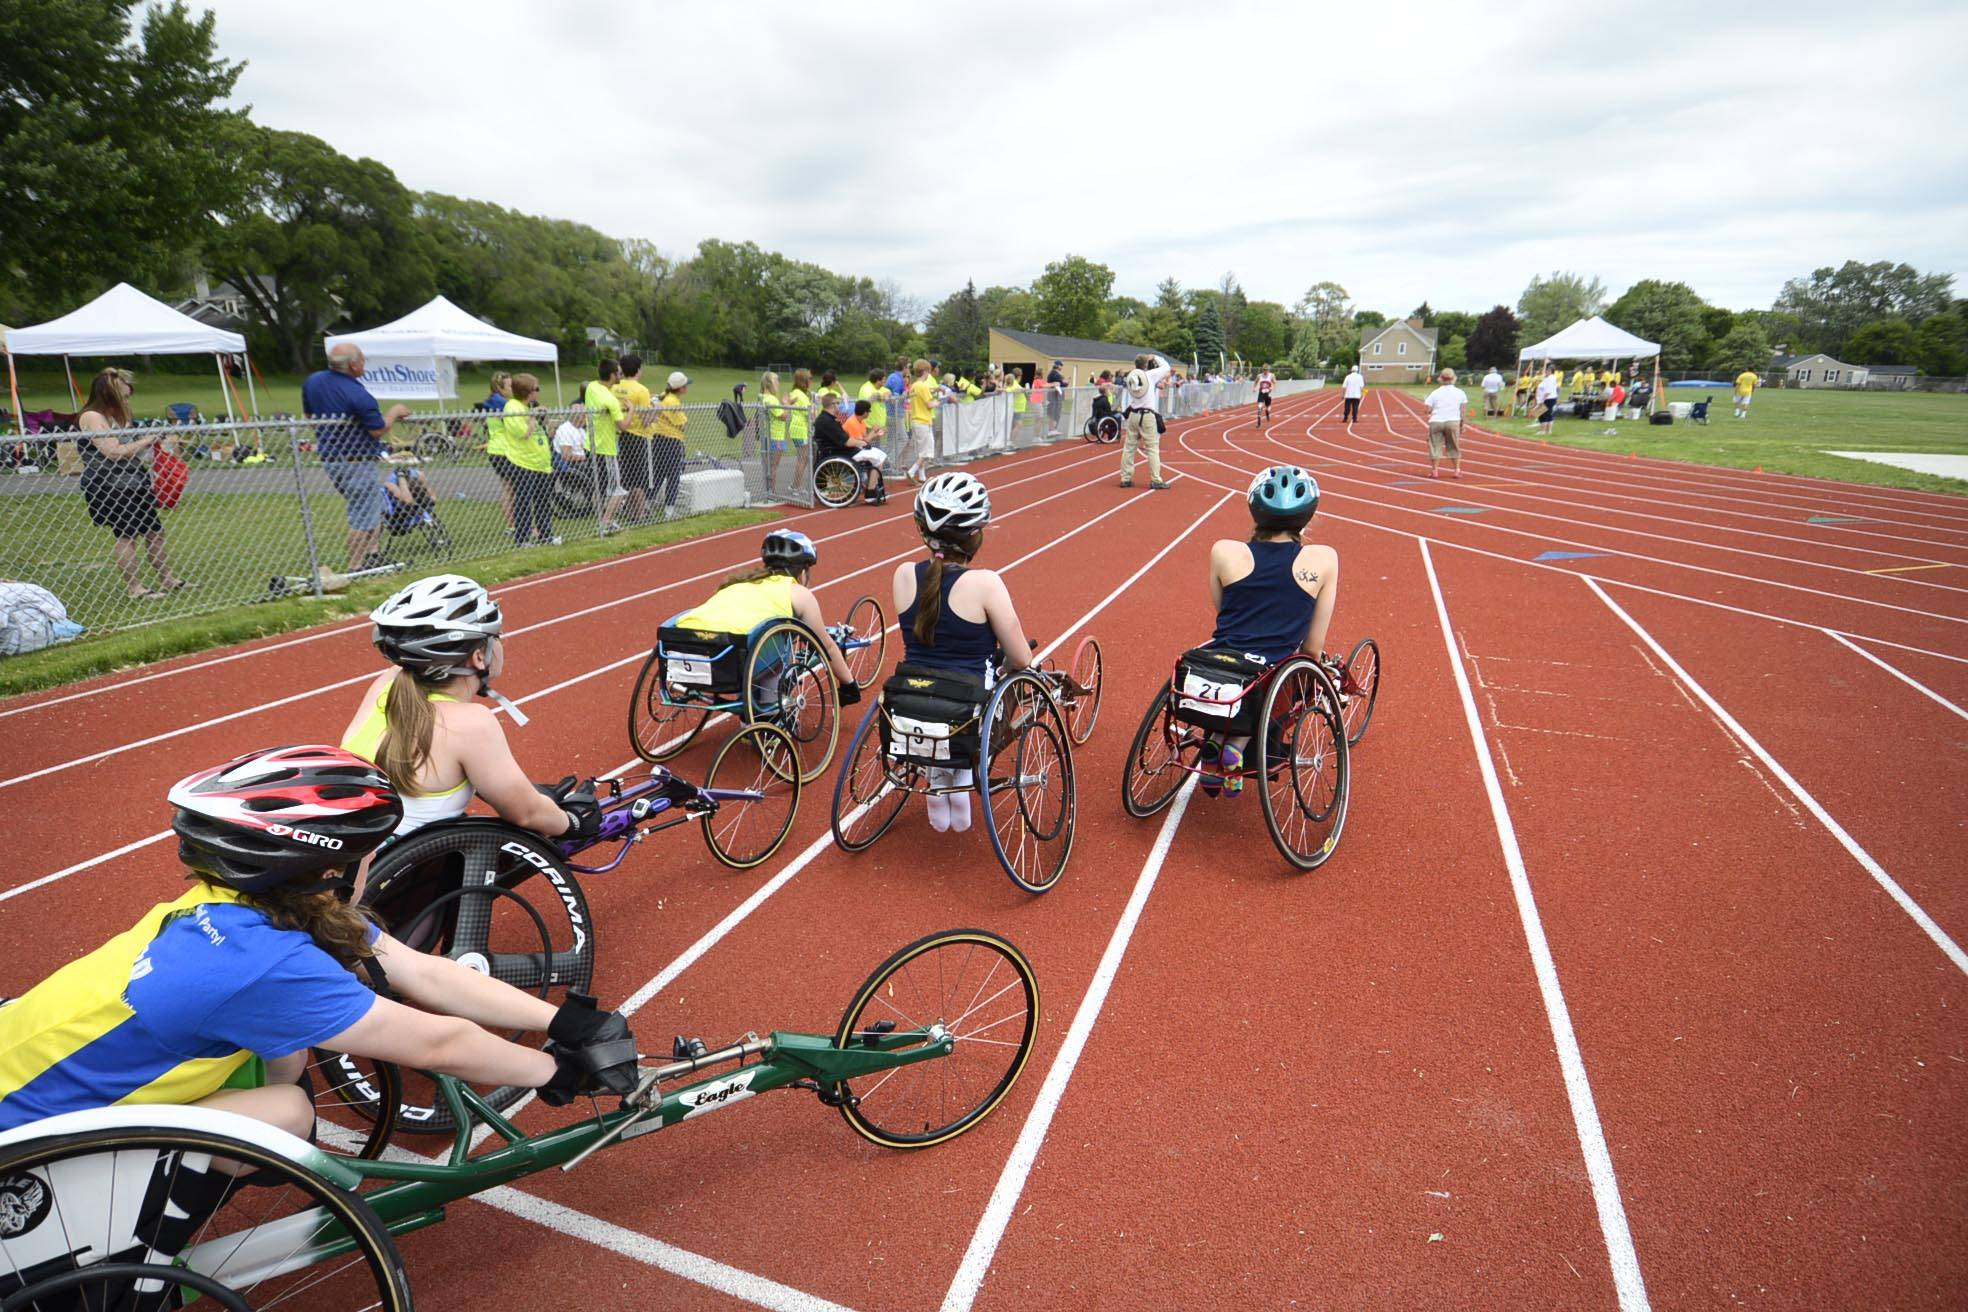 Athletes stage for a sprint race at the Great Lake Adaptive Sports Association 2014 Adult Regional Games at Lake Forest High School Sunday.